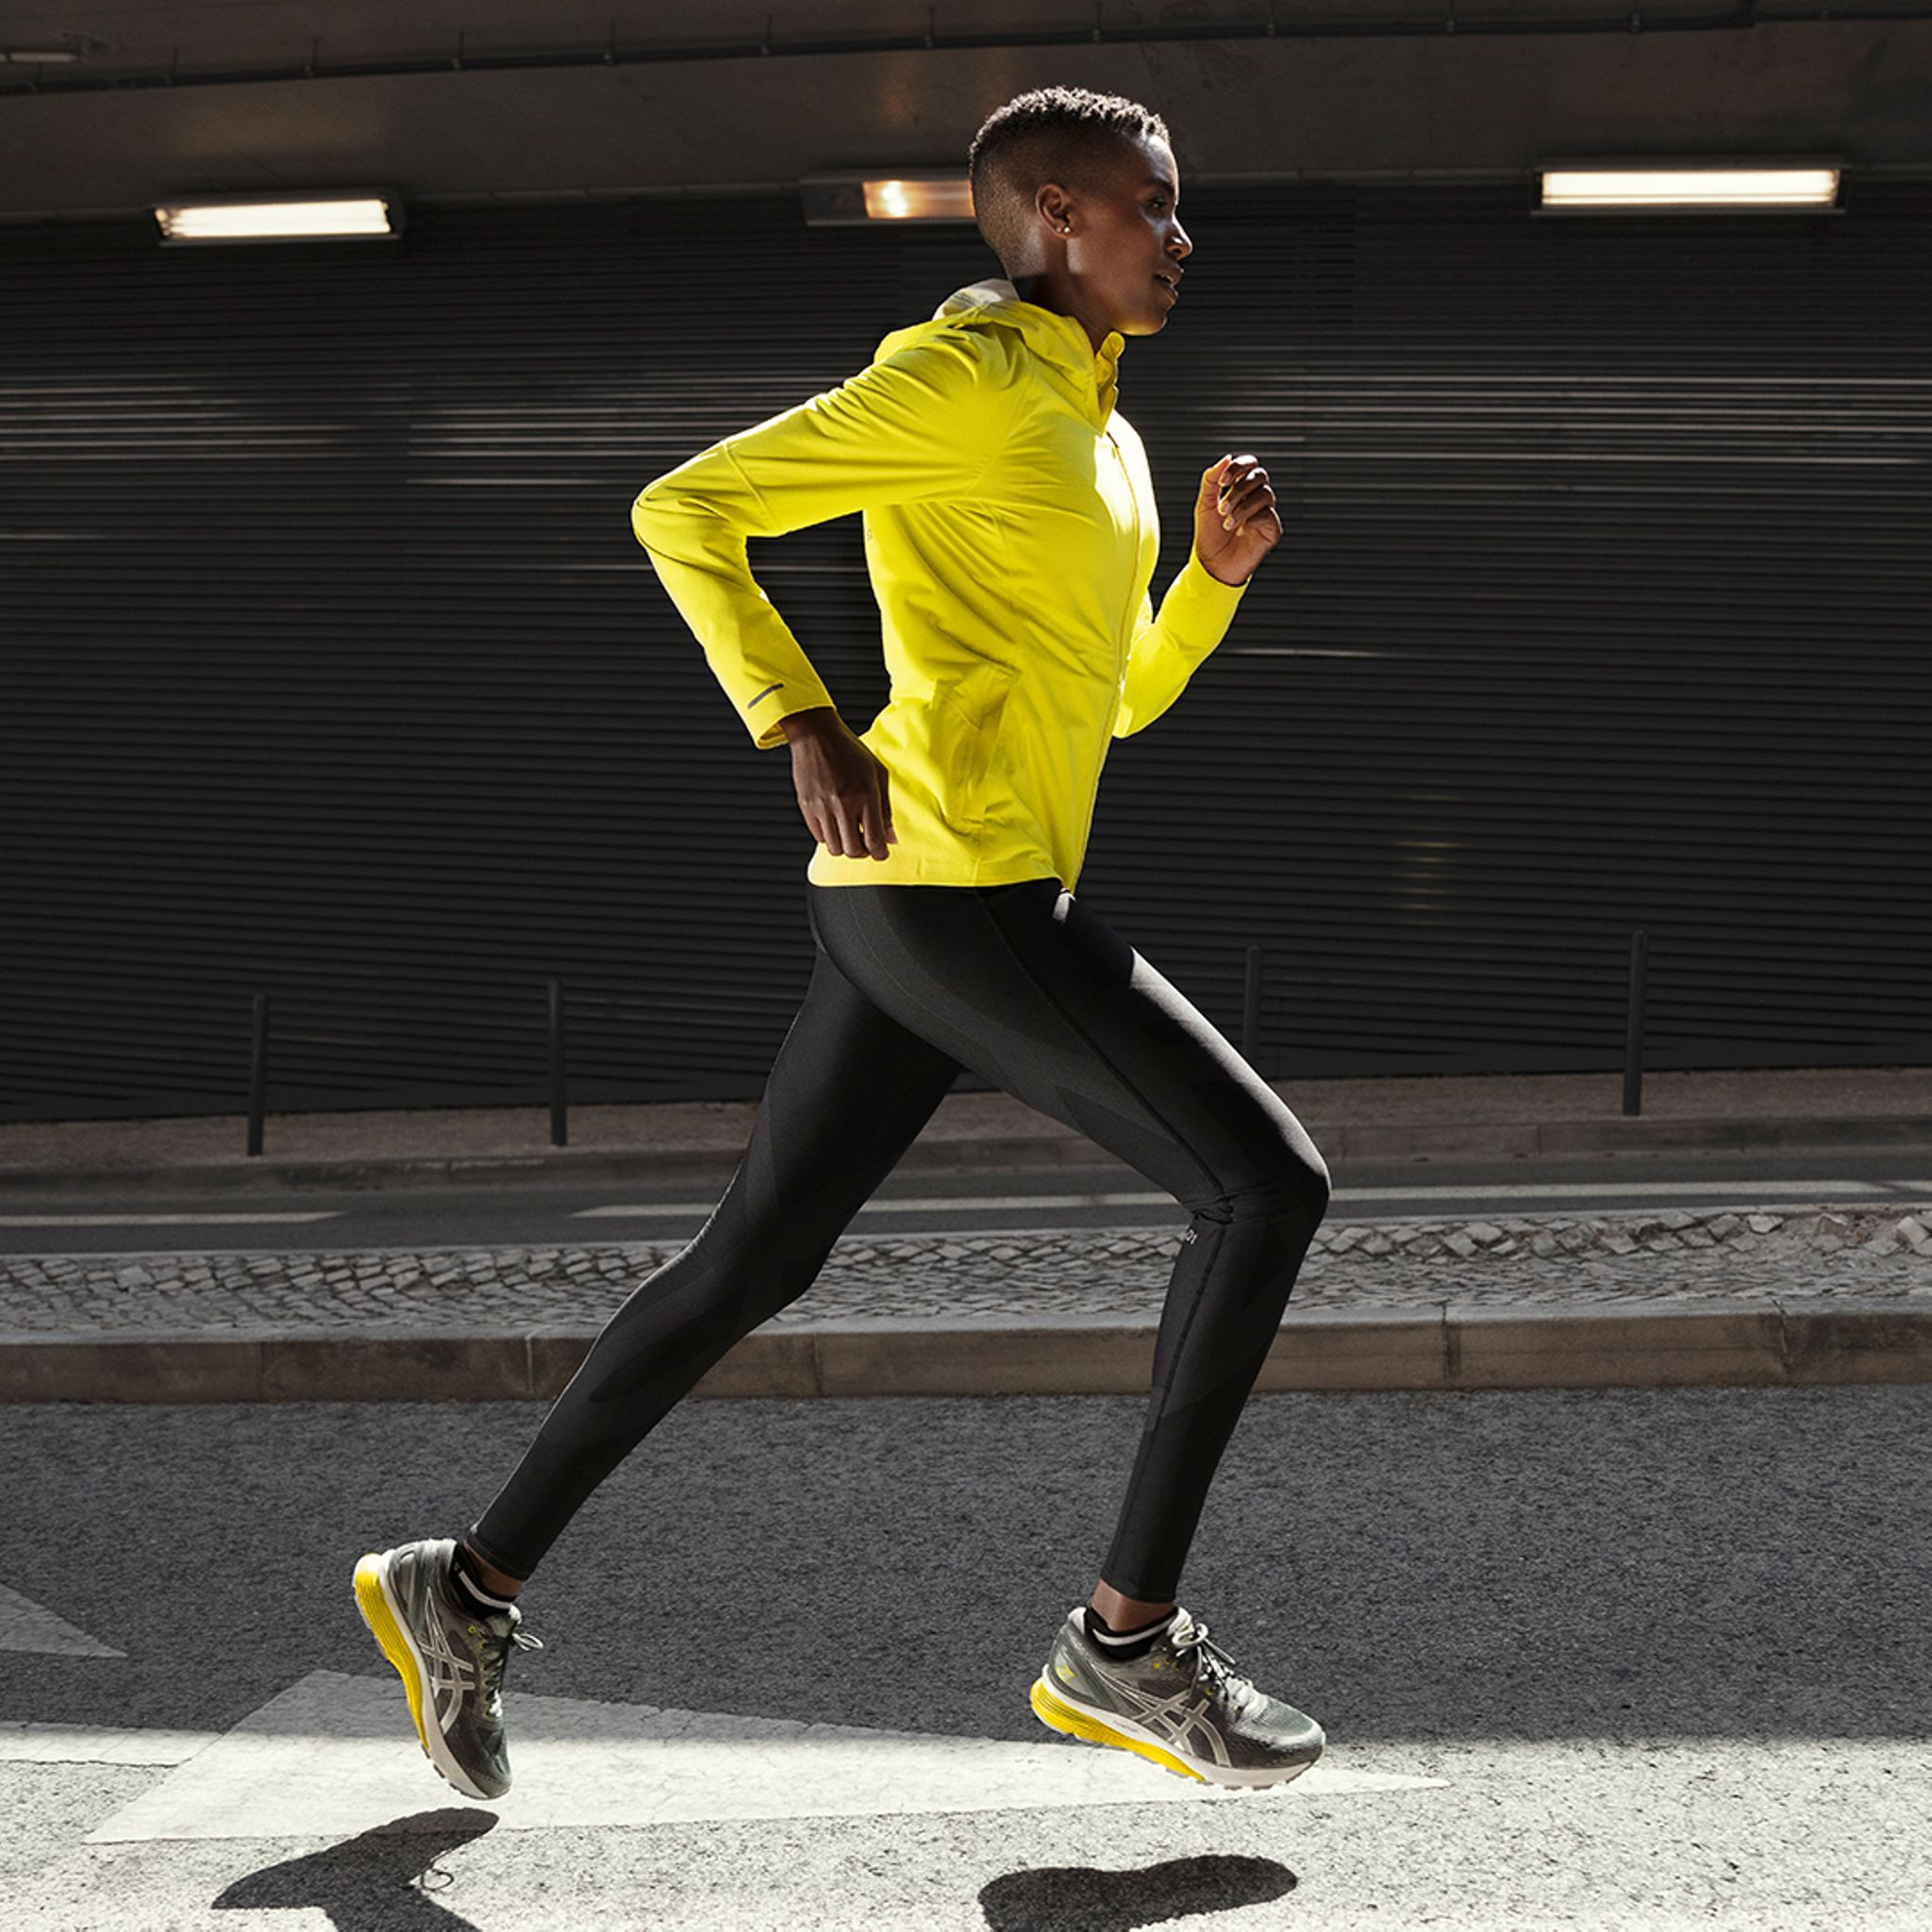 ASICS Nimbus 21 is now at Wiggle | A post by Wiggle Running